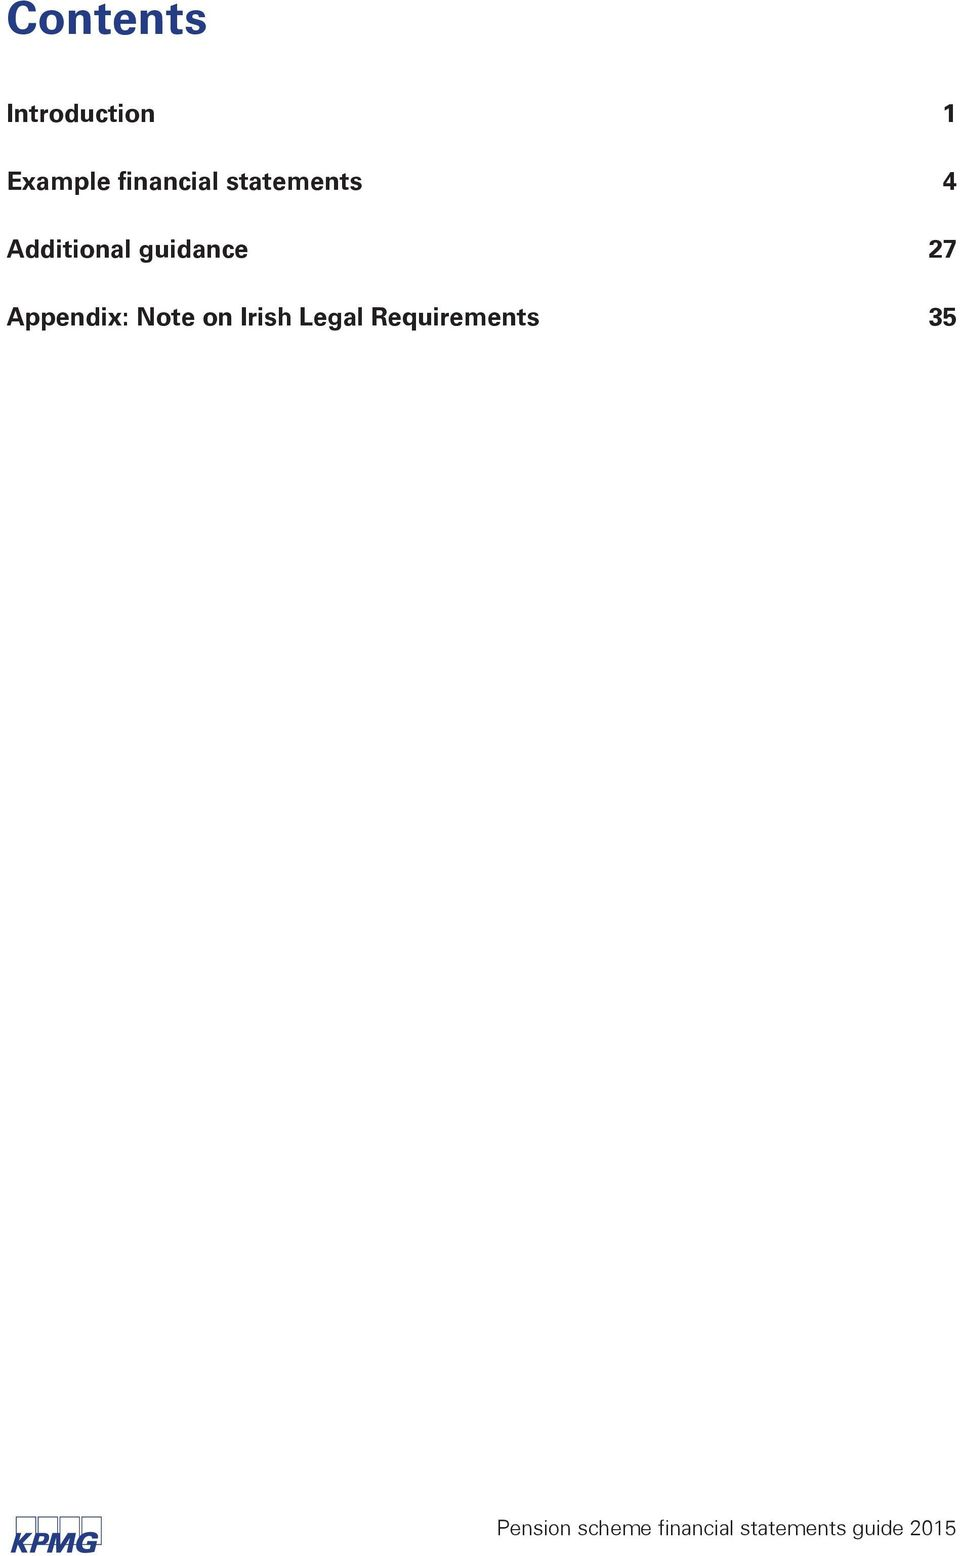 Appendix: Note on Irish Legal Requirements